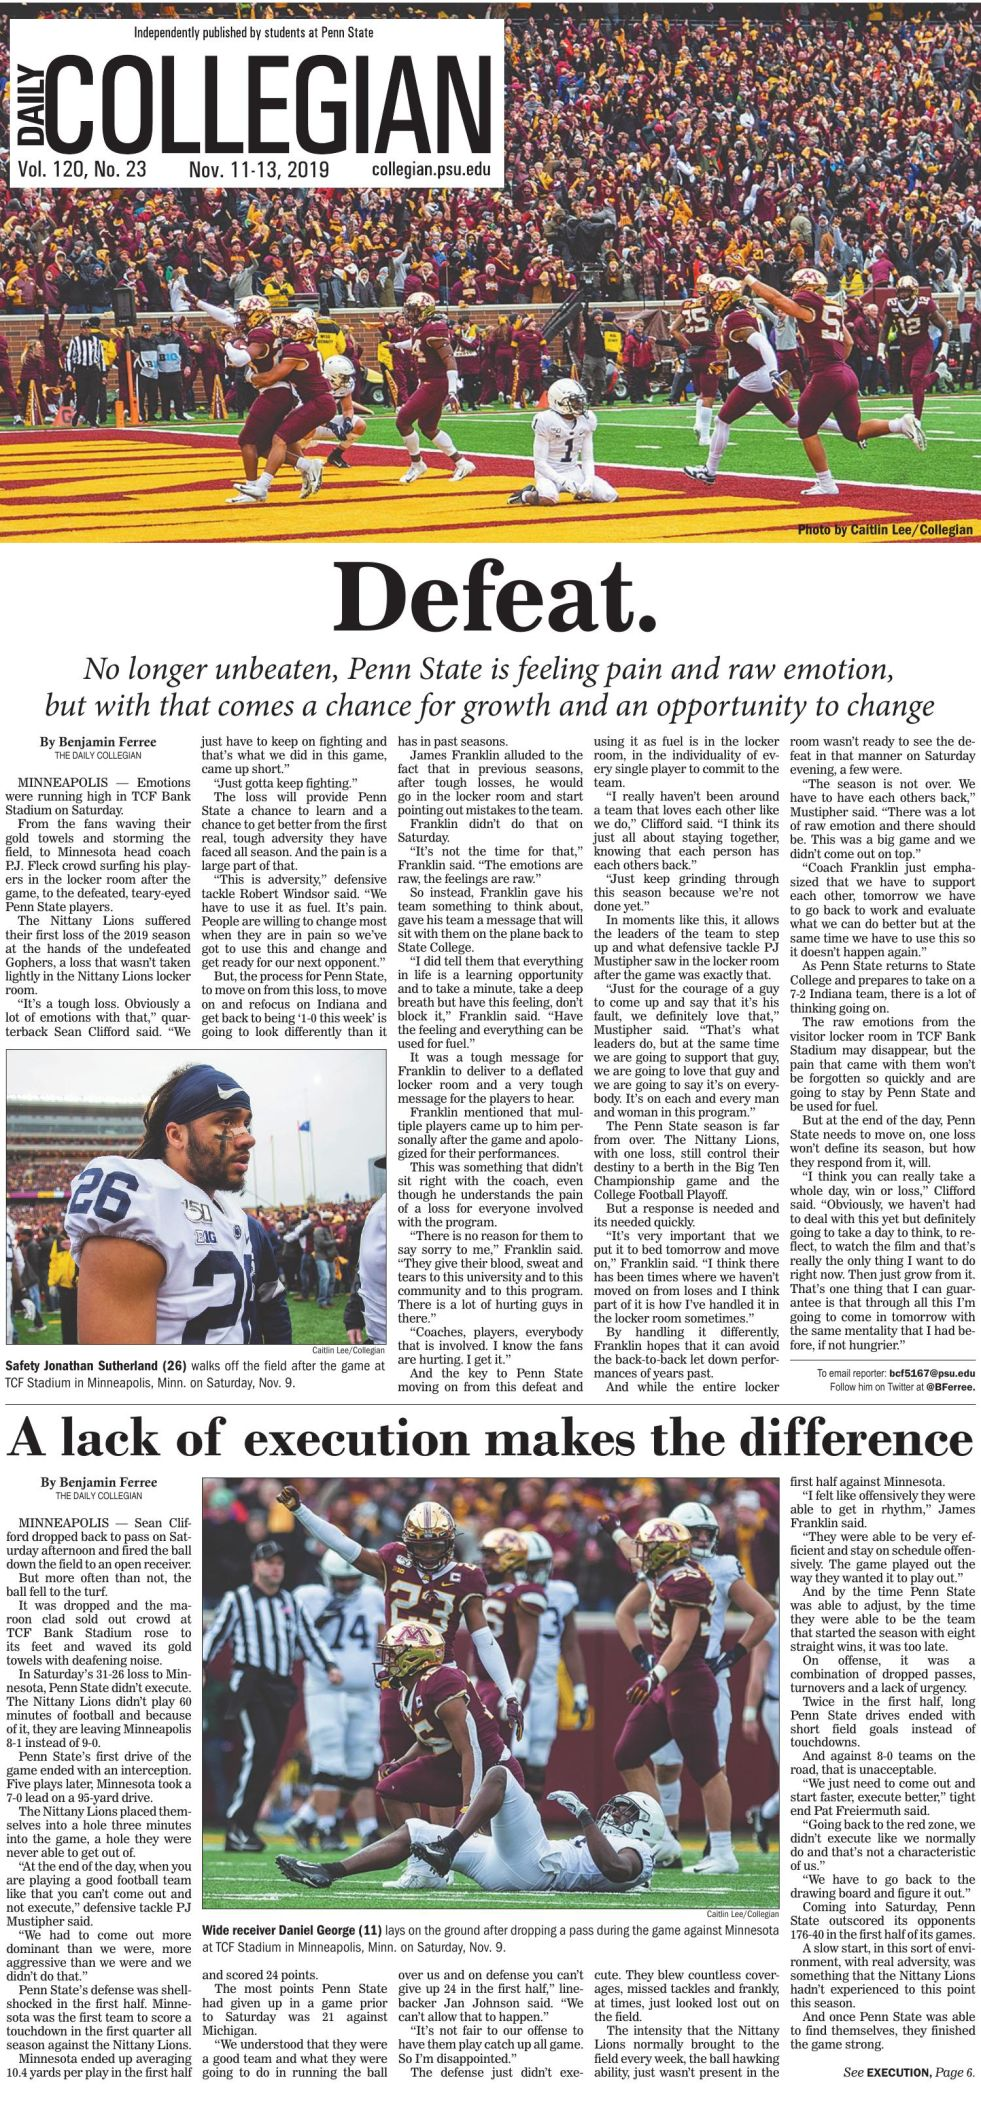 The Daily Collegian for Nov. 11, 2019